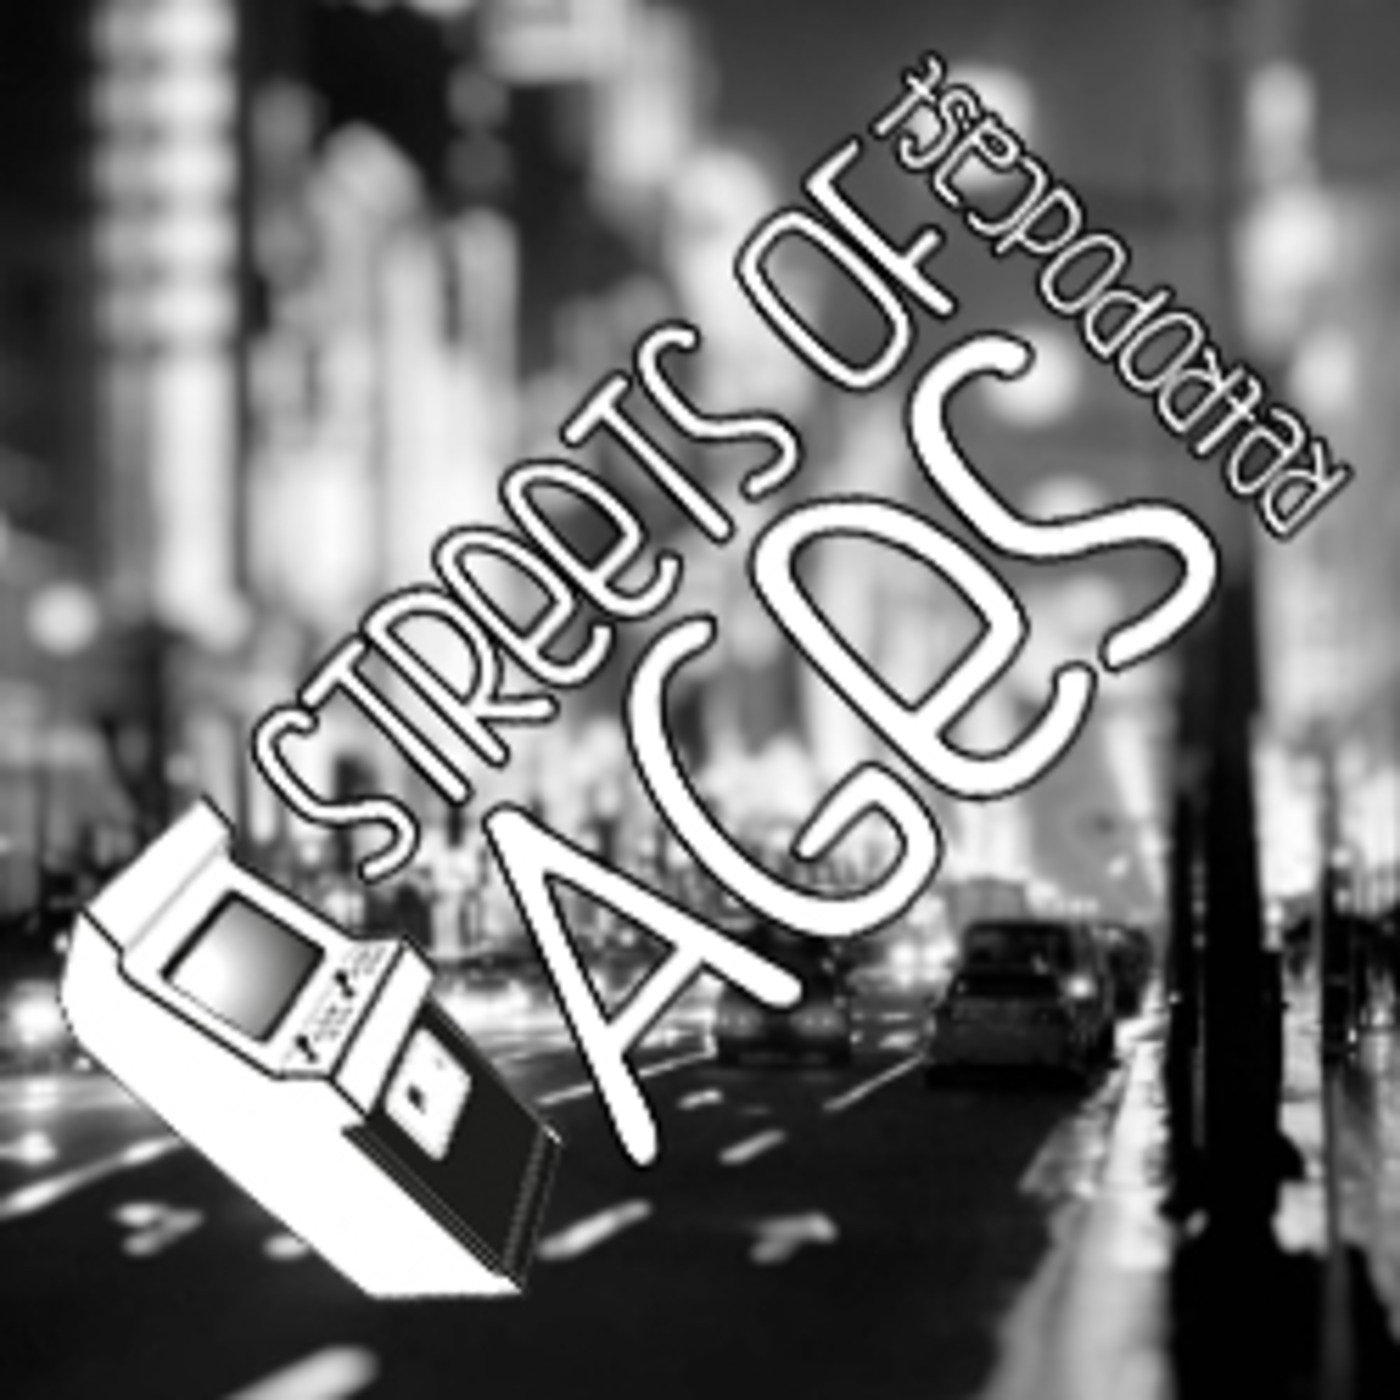 <![CDATA[Podcast STREETS OF AGES]]>